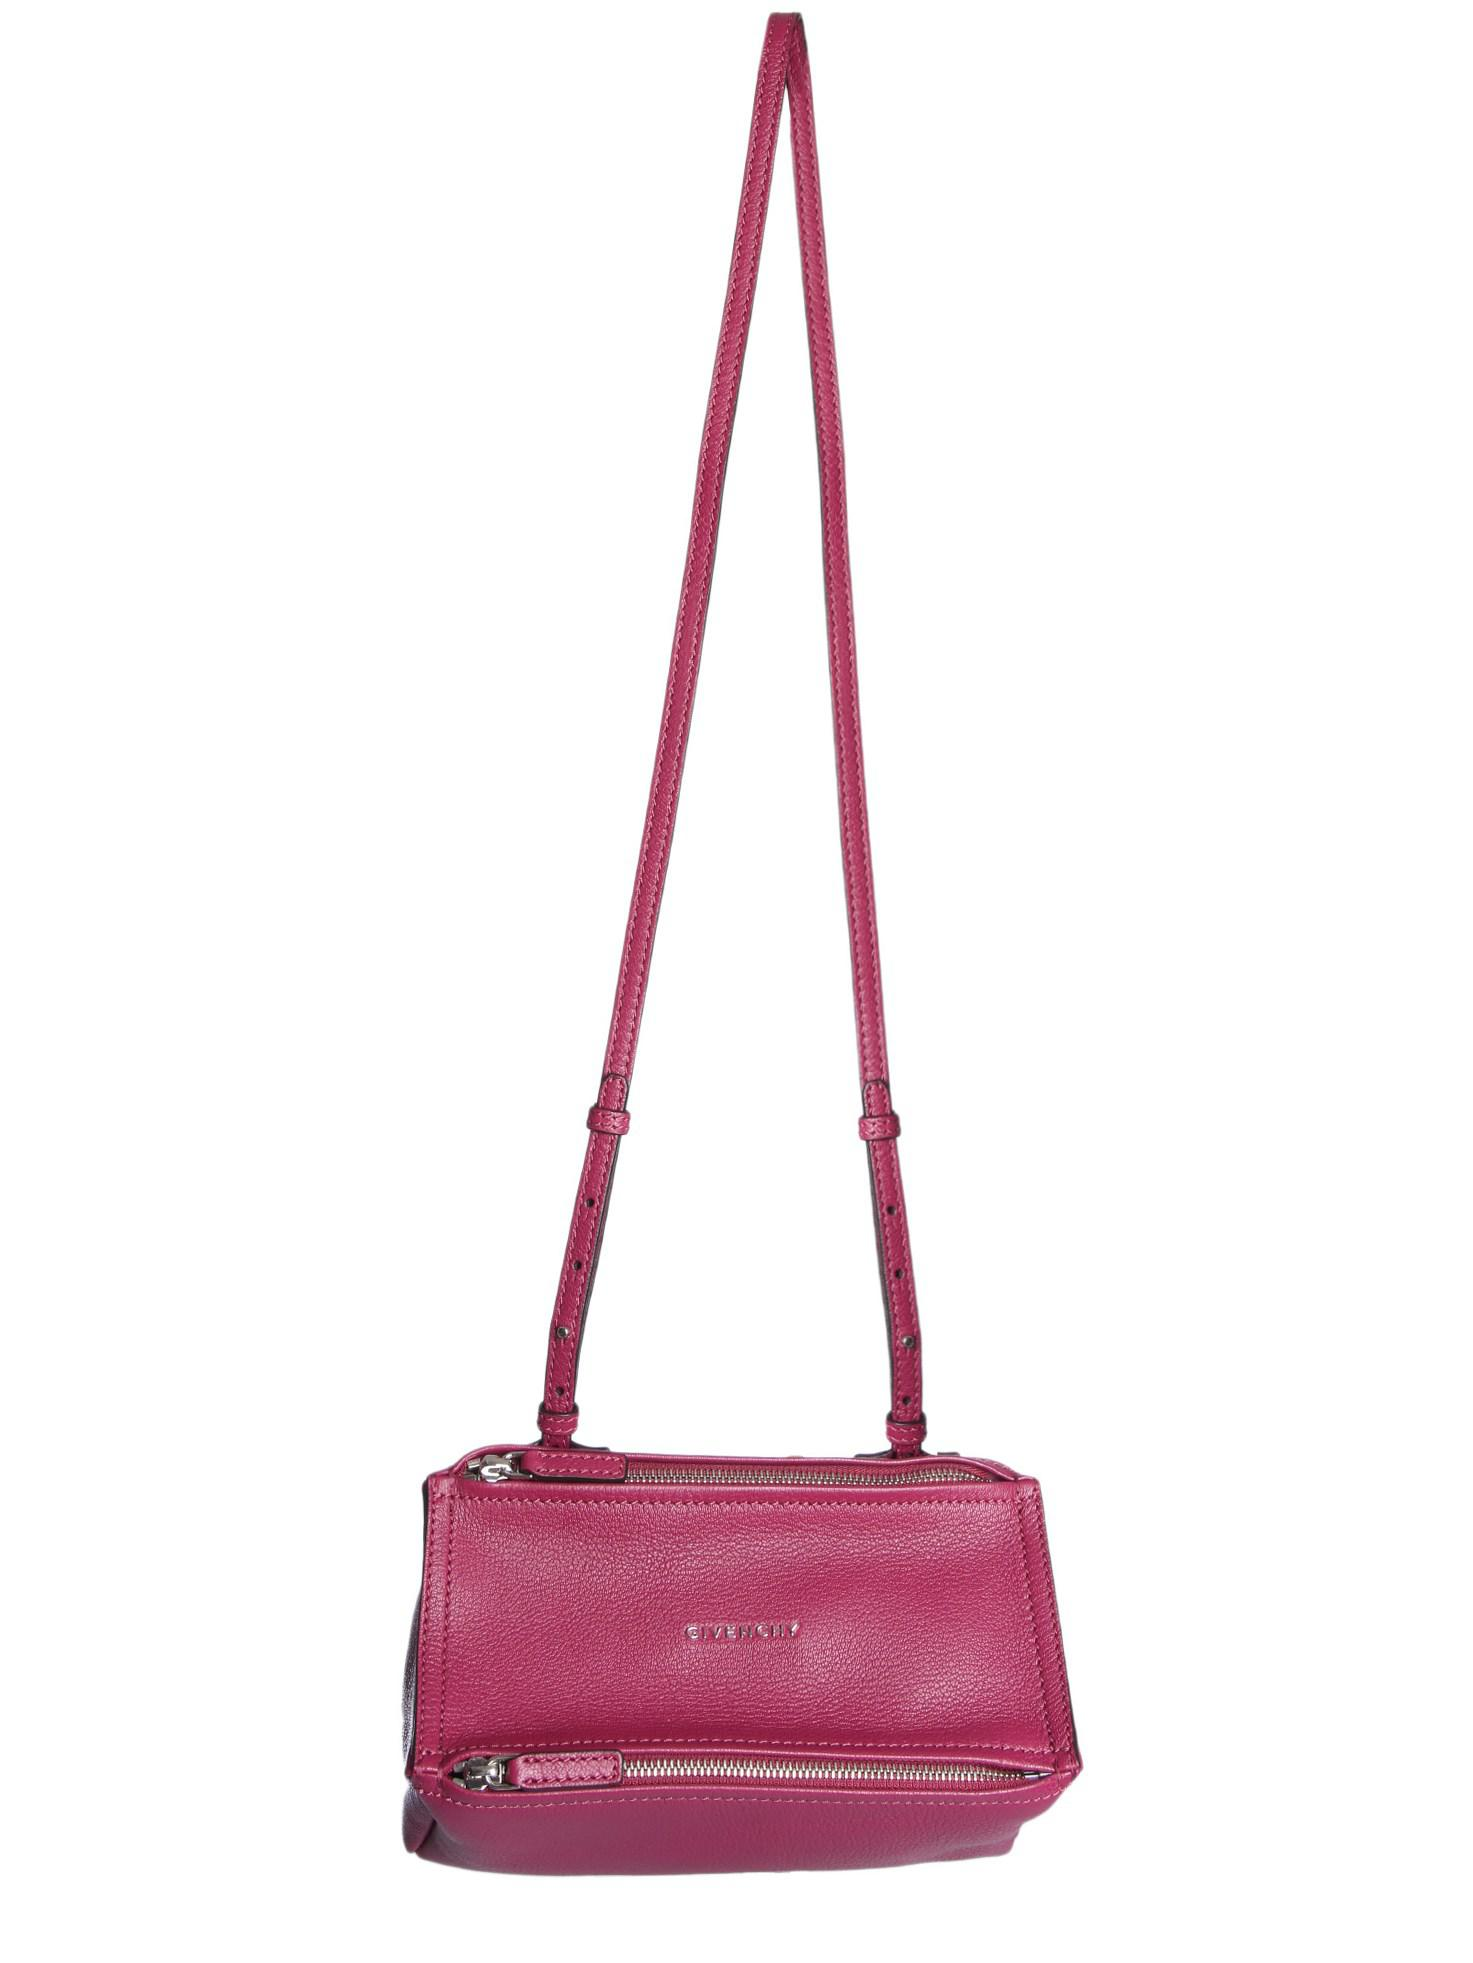 d5e7e2bd065 Givenchy. Women s Purple Small Pandora Bag In Hammered Leather. £867 From Eleonora  Bonucci